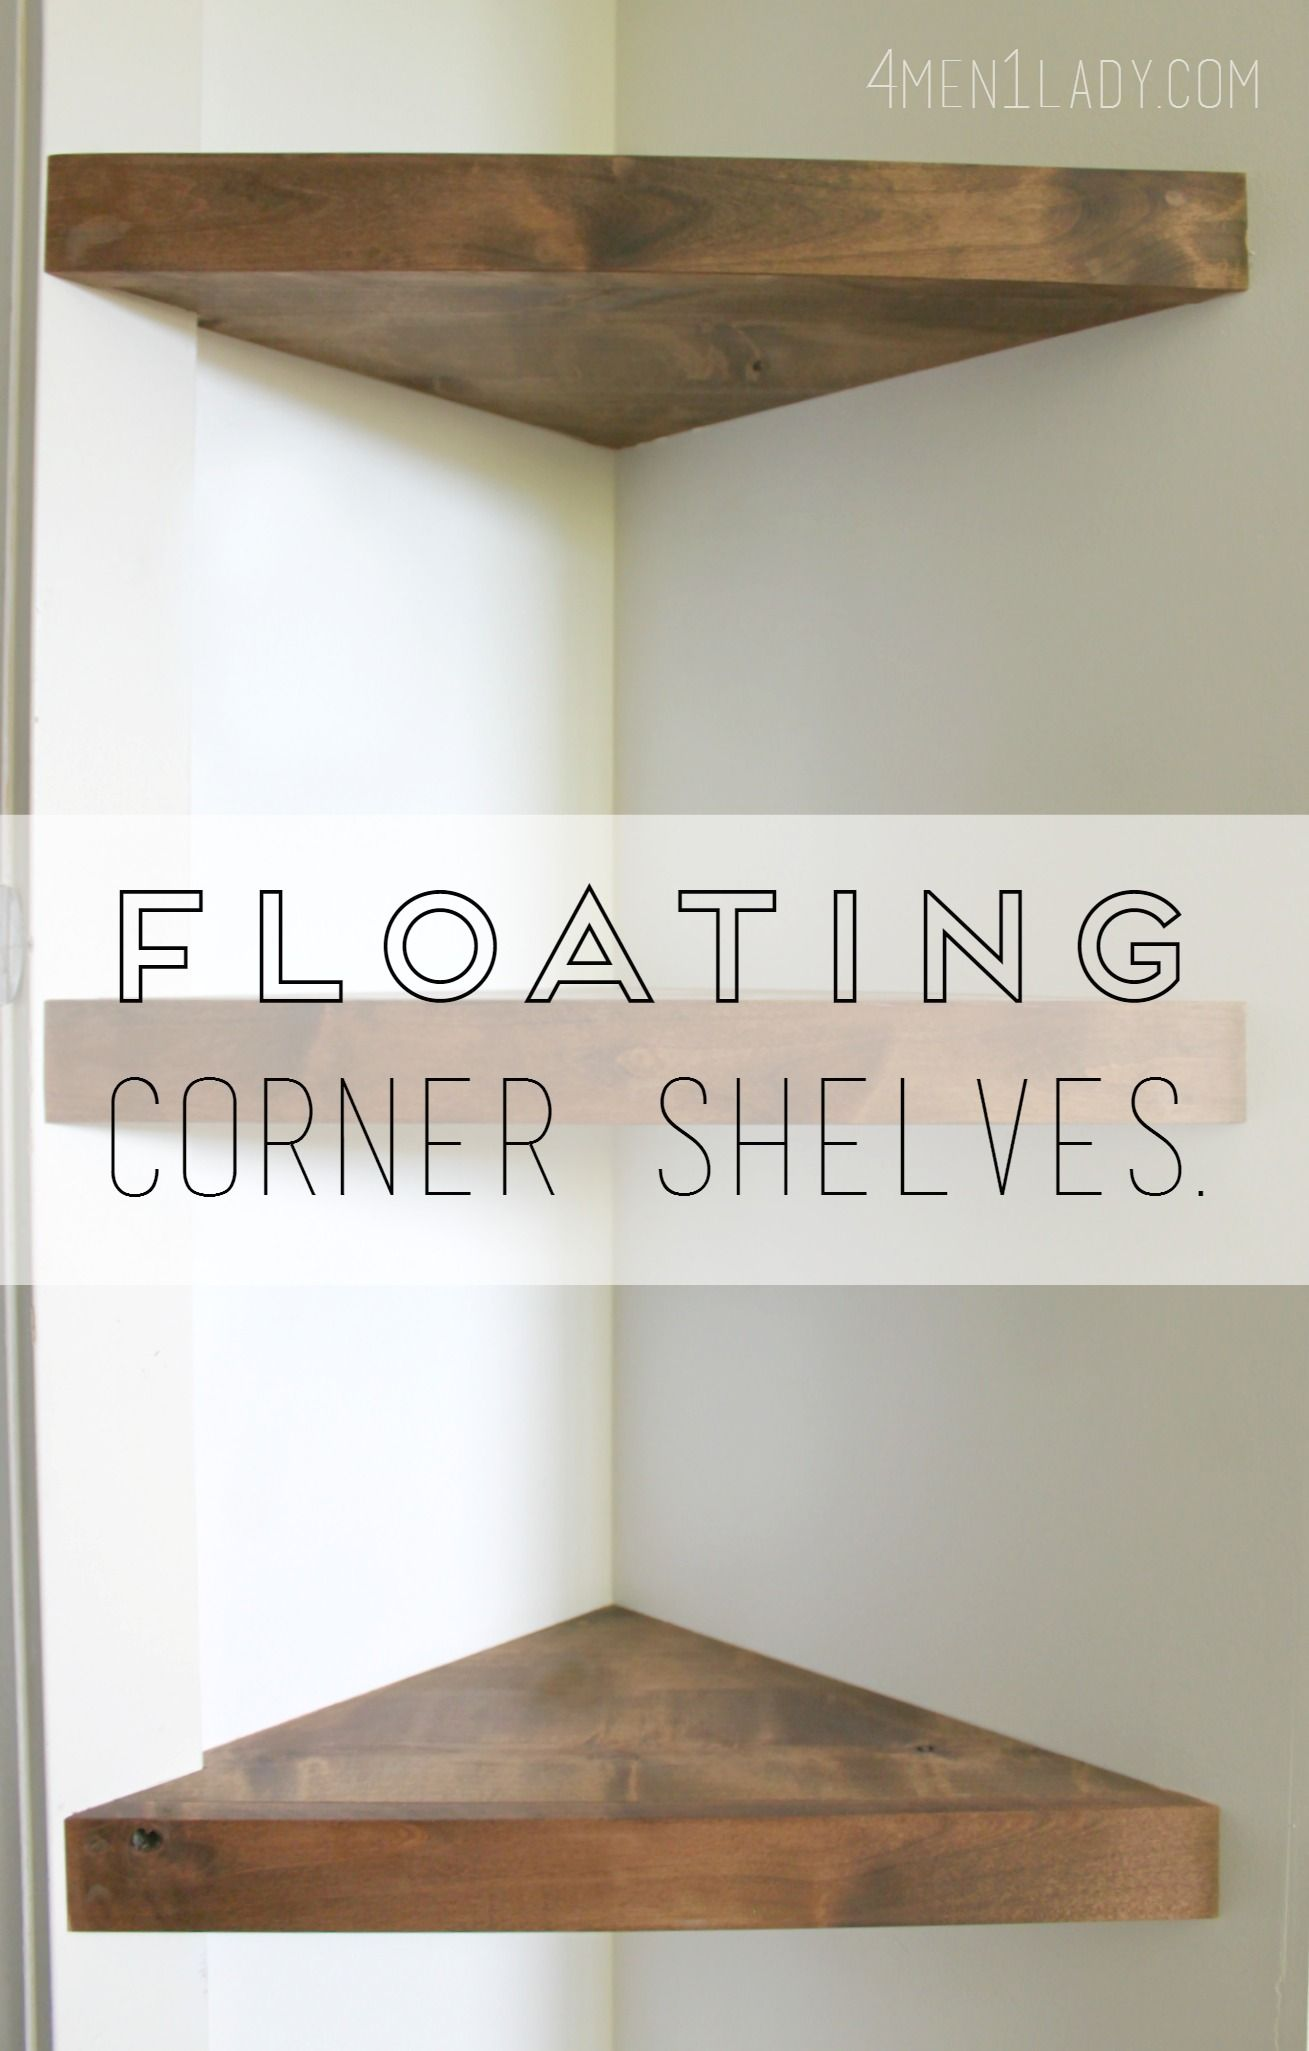 brilliantly creative diy shelving ideas apartment fixes inch floating corner shelf img shelves kitchen bedroom rustic heavy duty gray decor wall without brackets secret storage